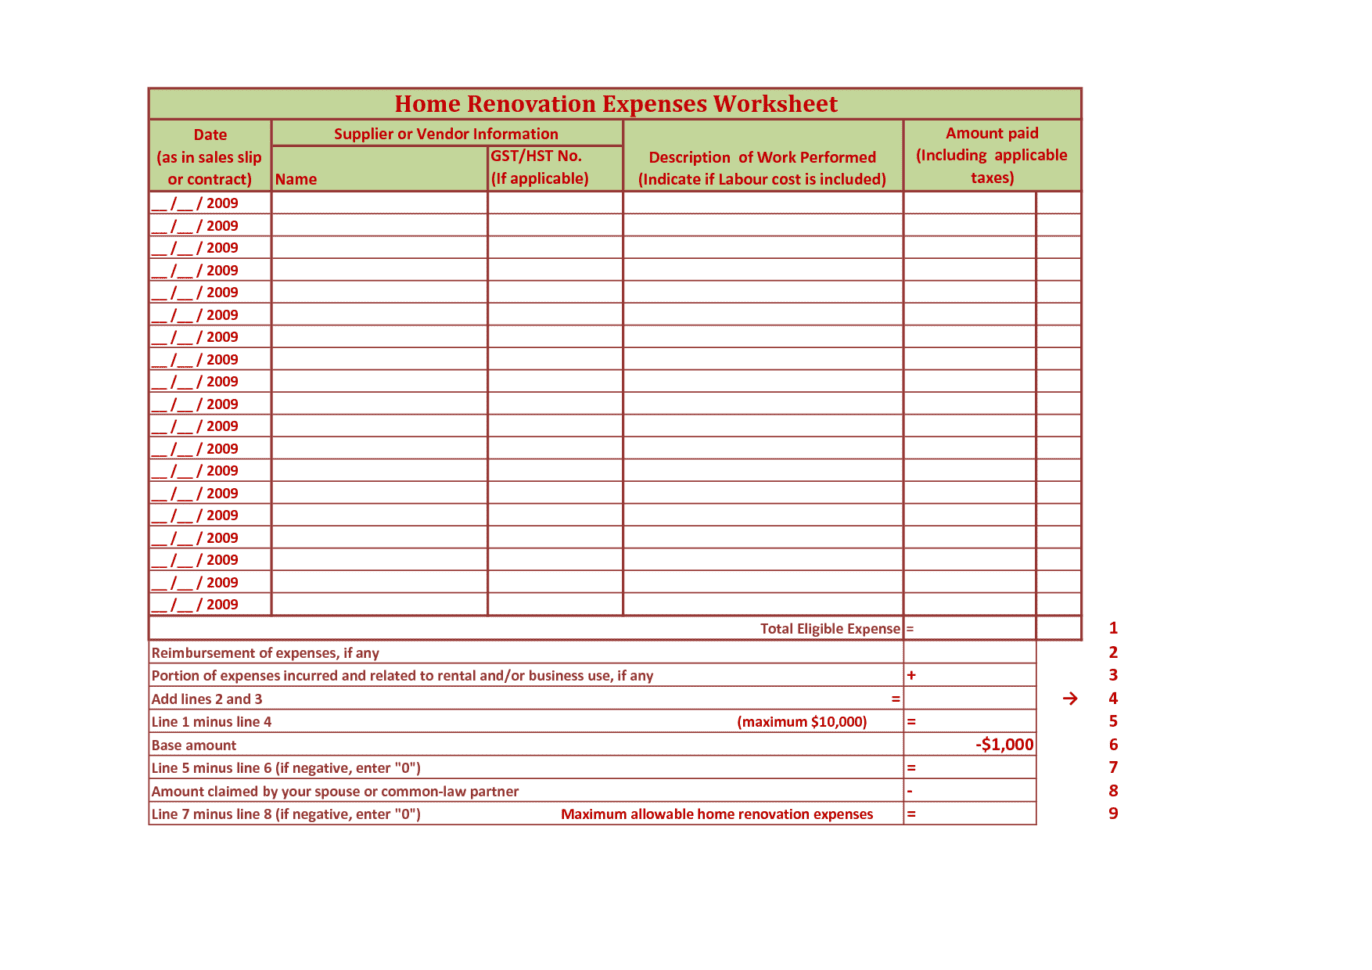 Google Docs Budget Template Spreadsheet Excel Home Remodel Template Builder Punch List Form Remodel Budget Template Renovation Budget Planner Free Renovation Spreadsheet Template Home Improvement Spreadsheet  Builder Punch List Form Renovation Spreadsheet Template Spreadsheet Templates for Busines